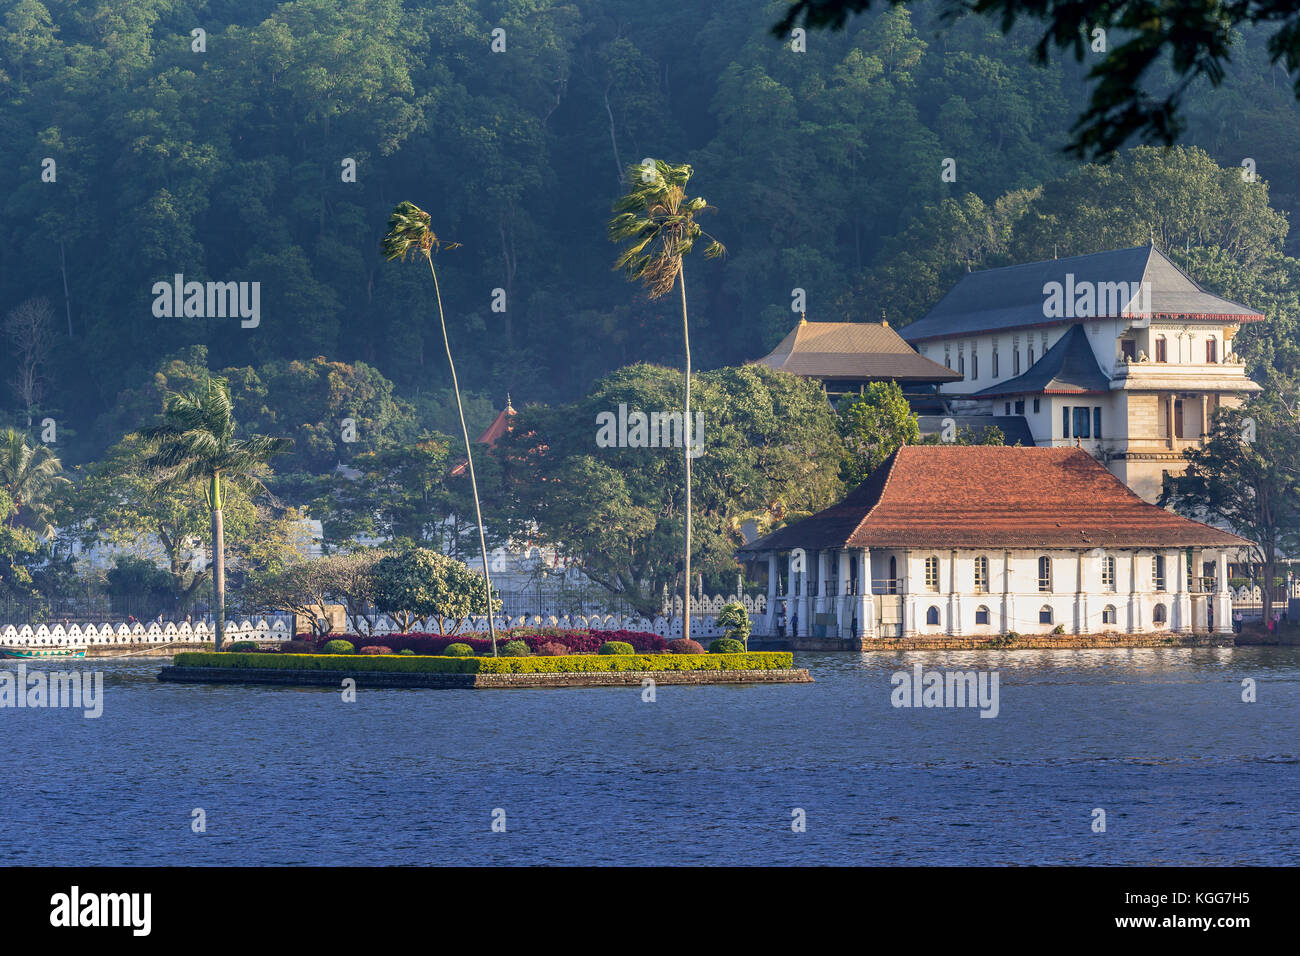 Temple of the Sacred Tooth Relic, Kandy, Sri Lanka - Stock Image